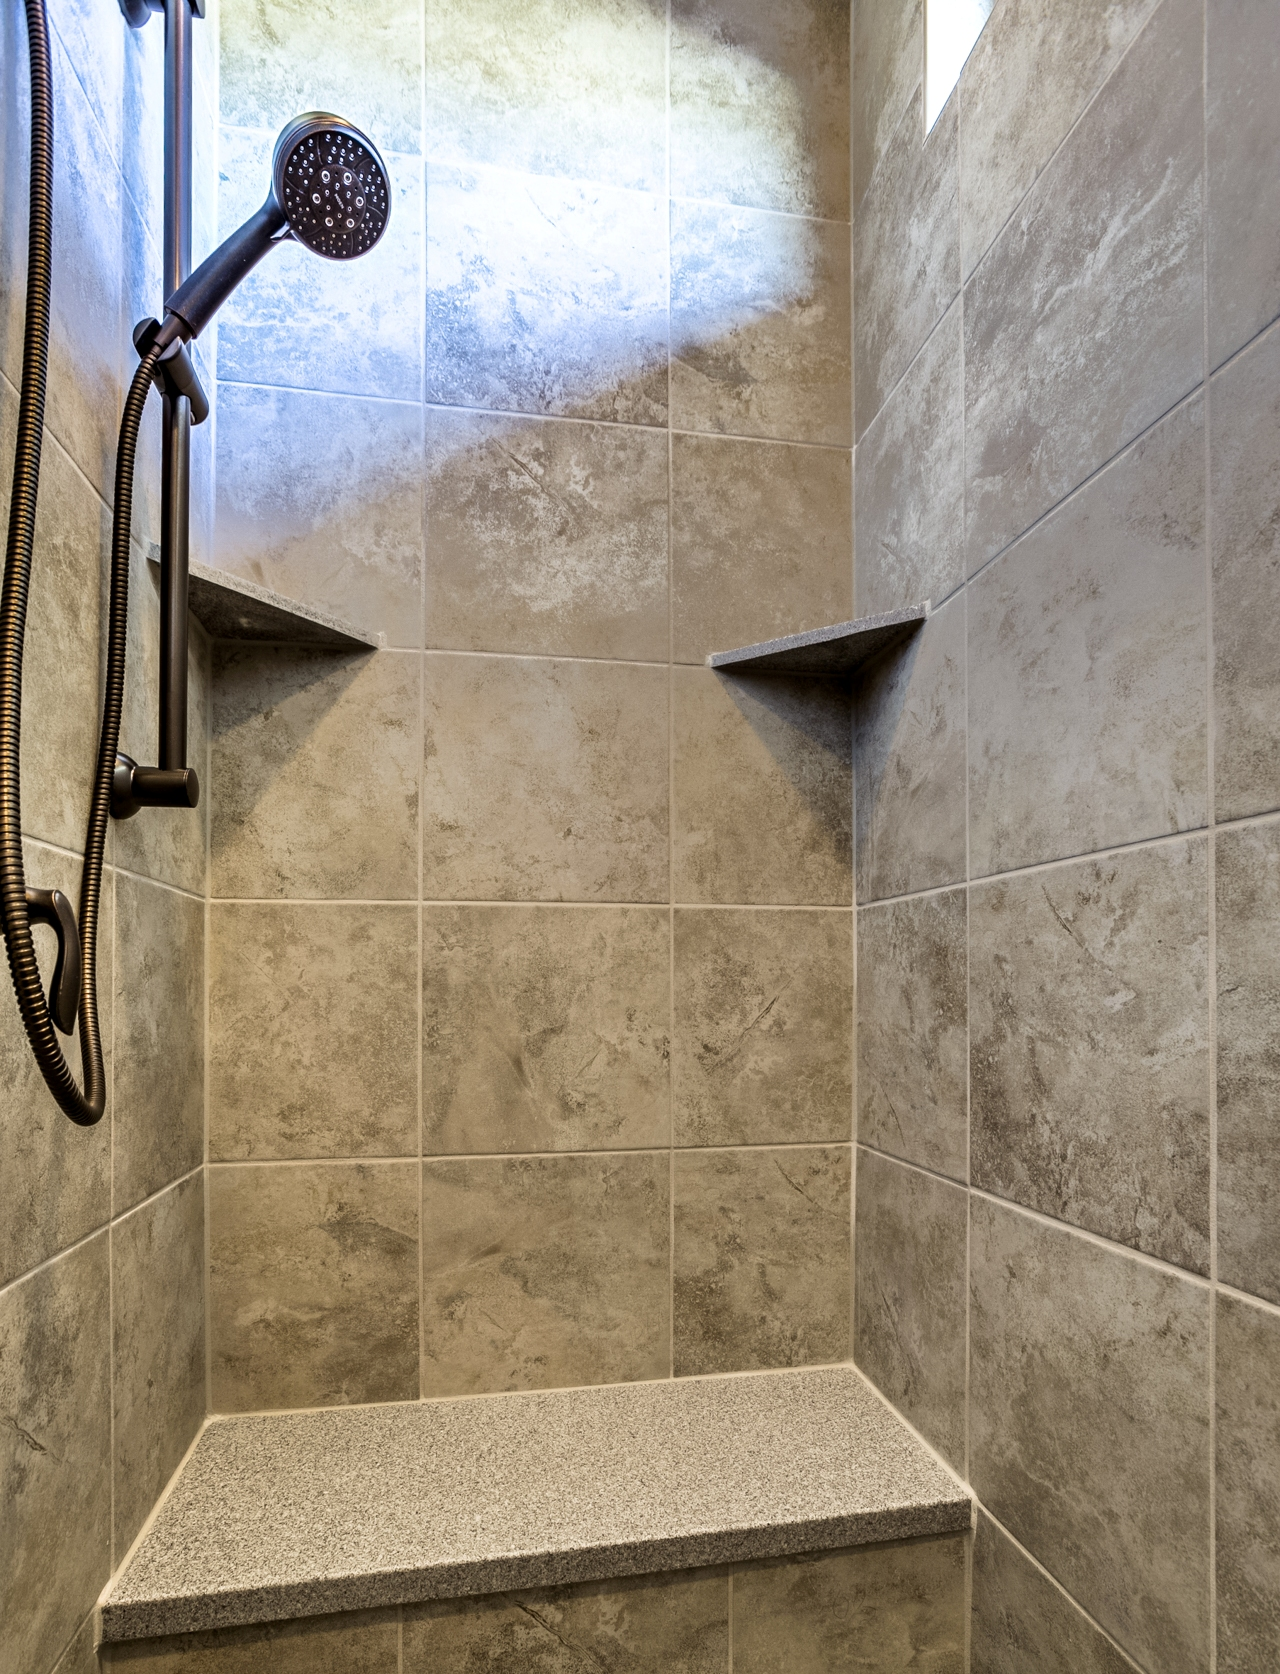 Walk in tile shower with transom window and rain head